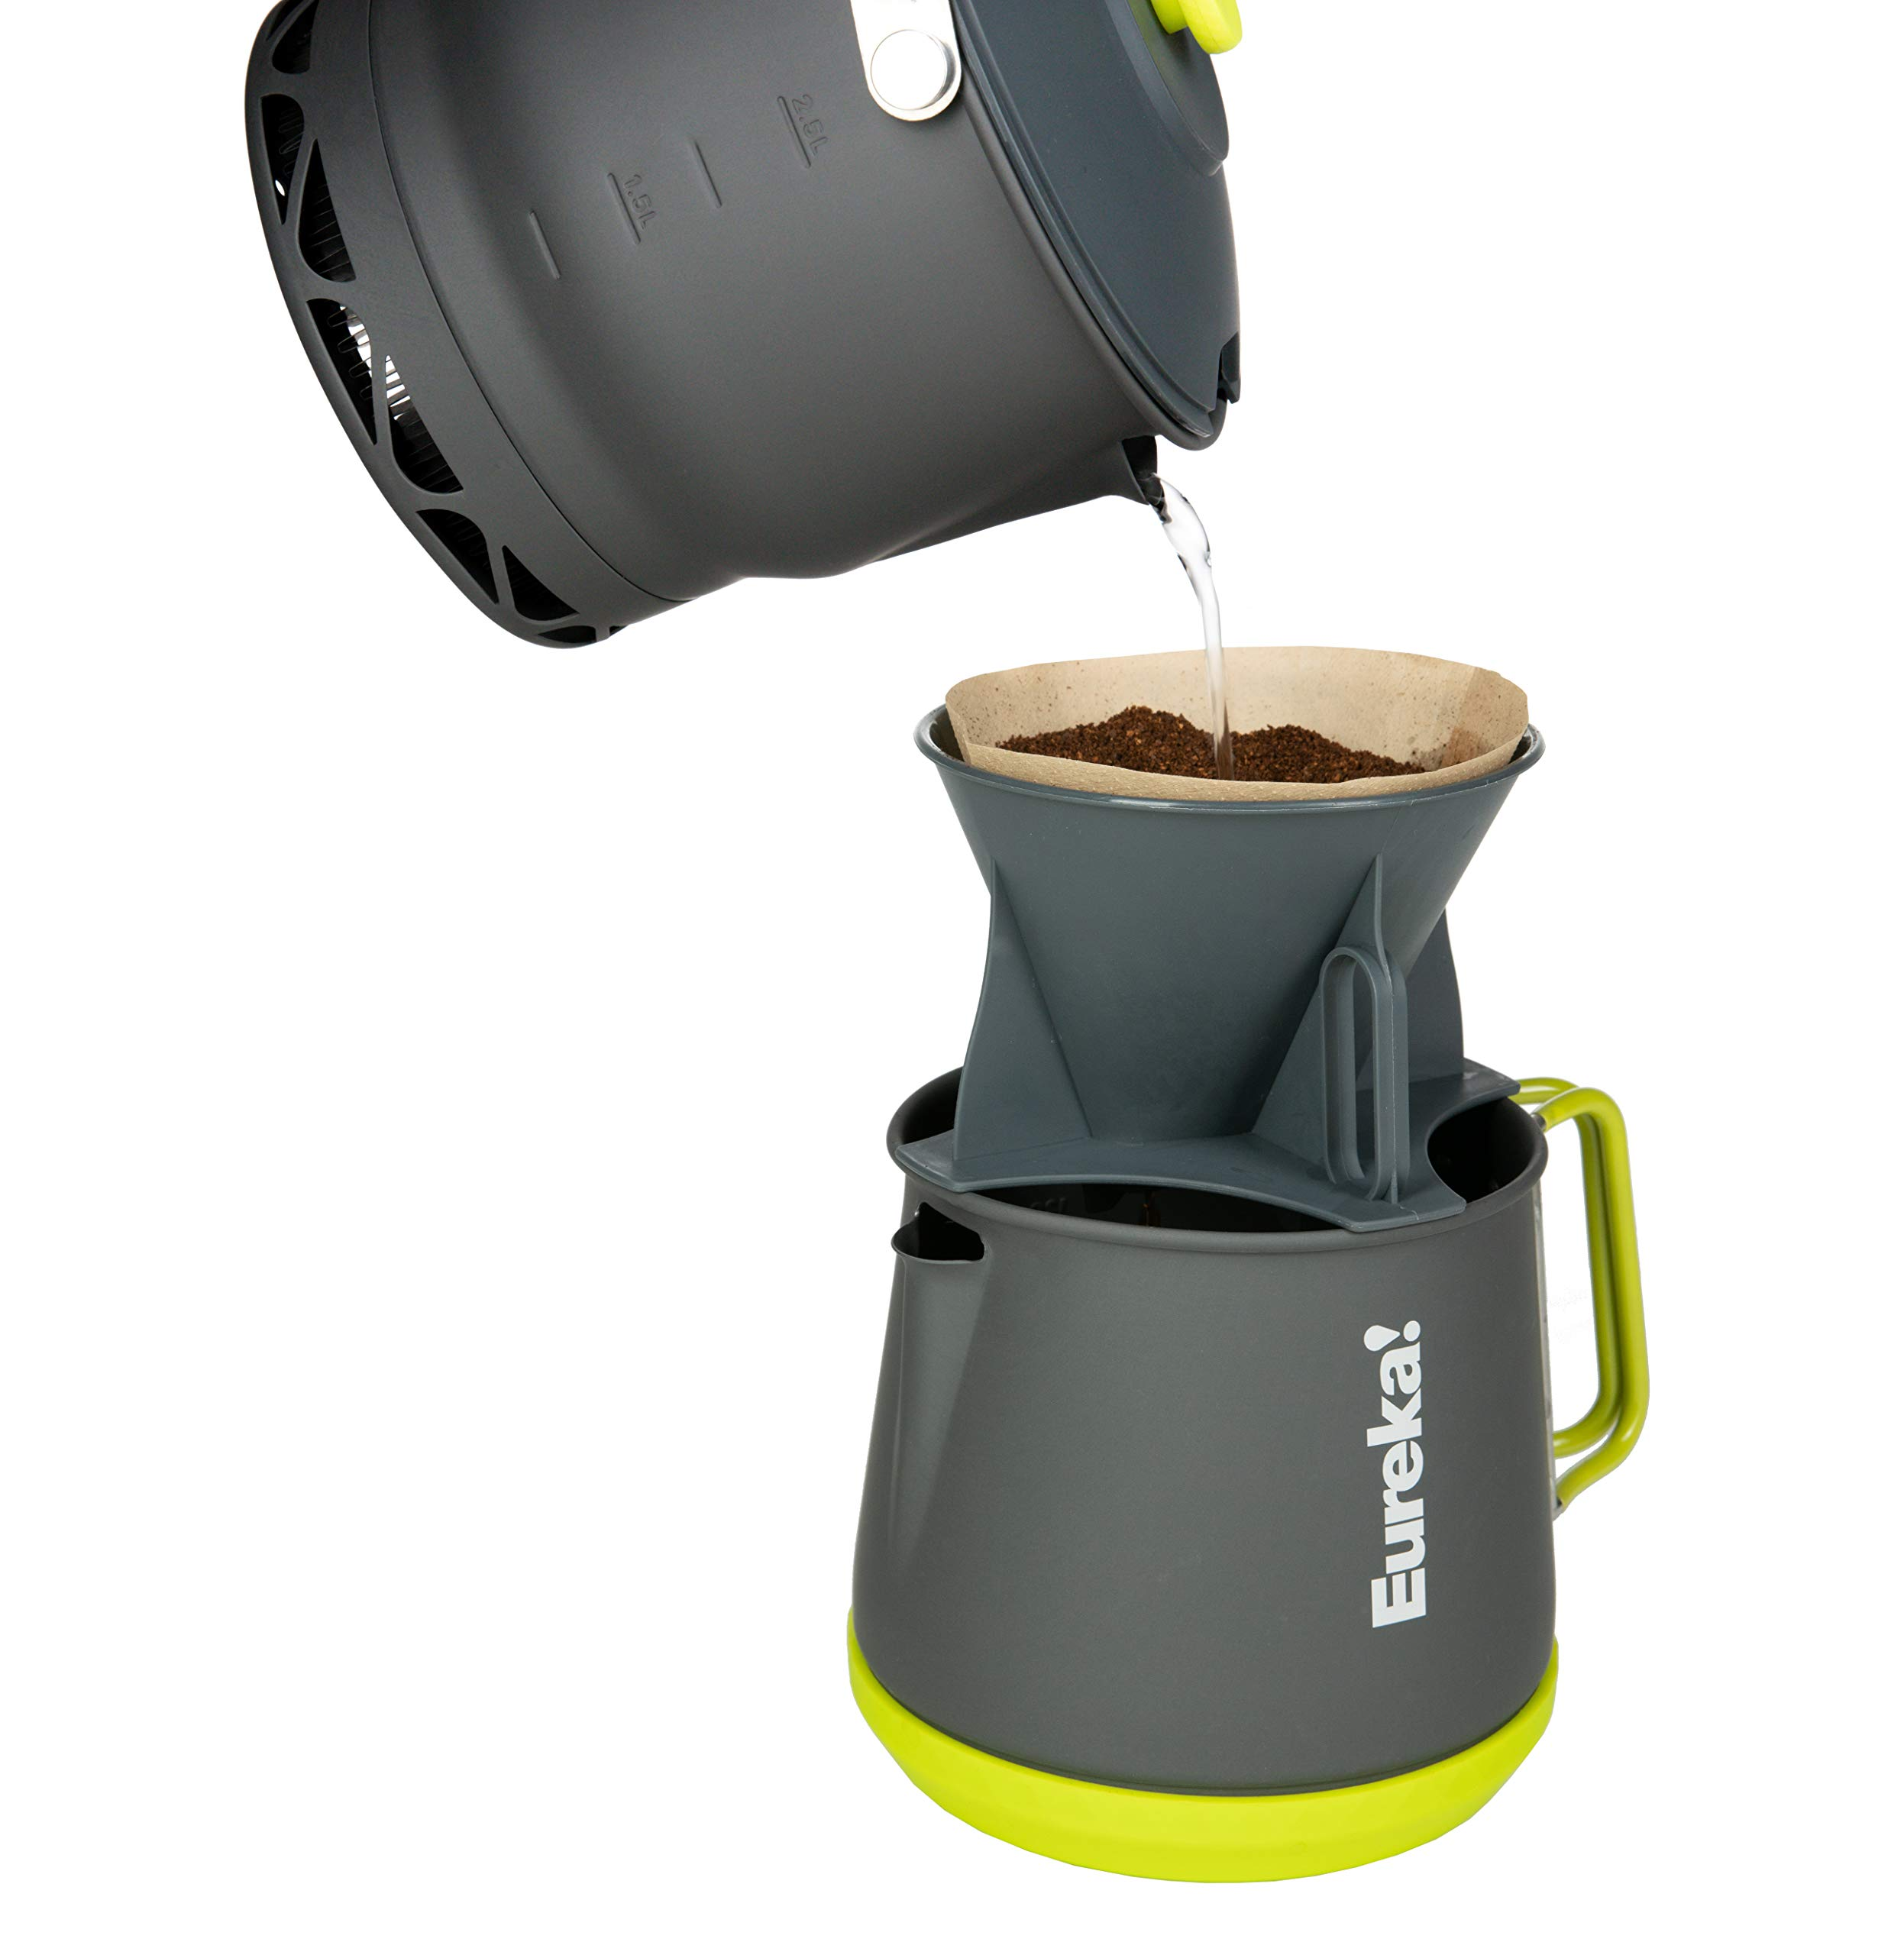 Eureka! Camp Café Camping Coffee Maker, Gray by Eureka!